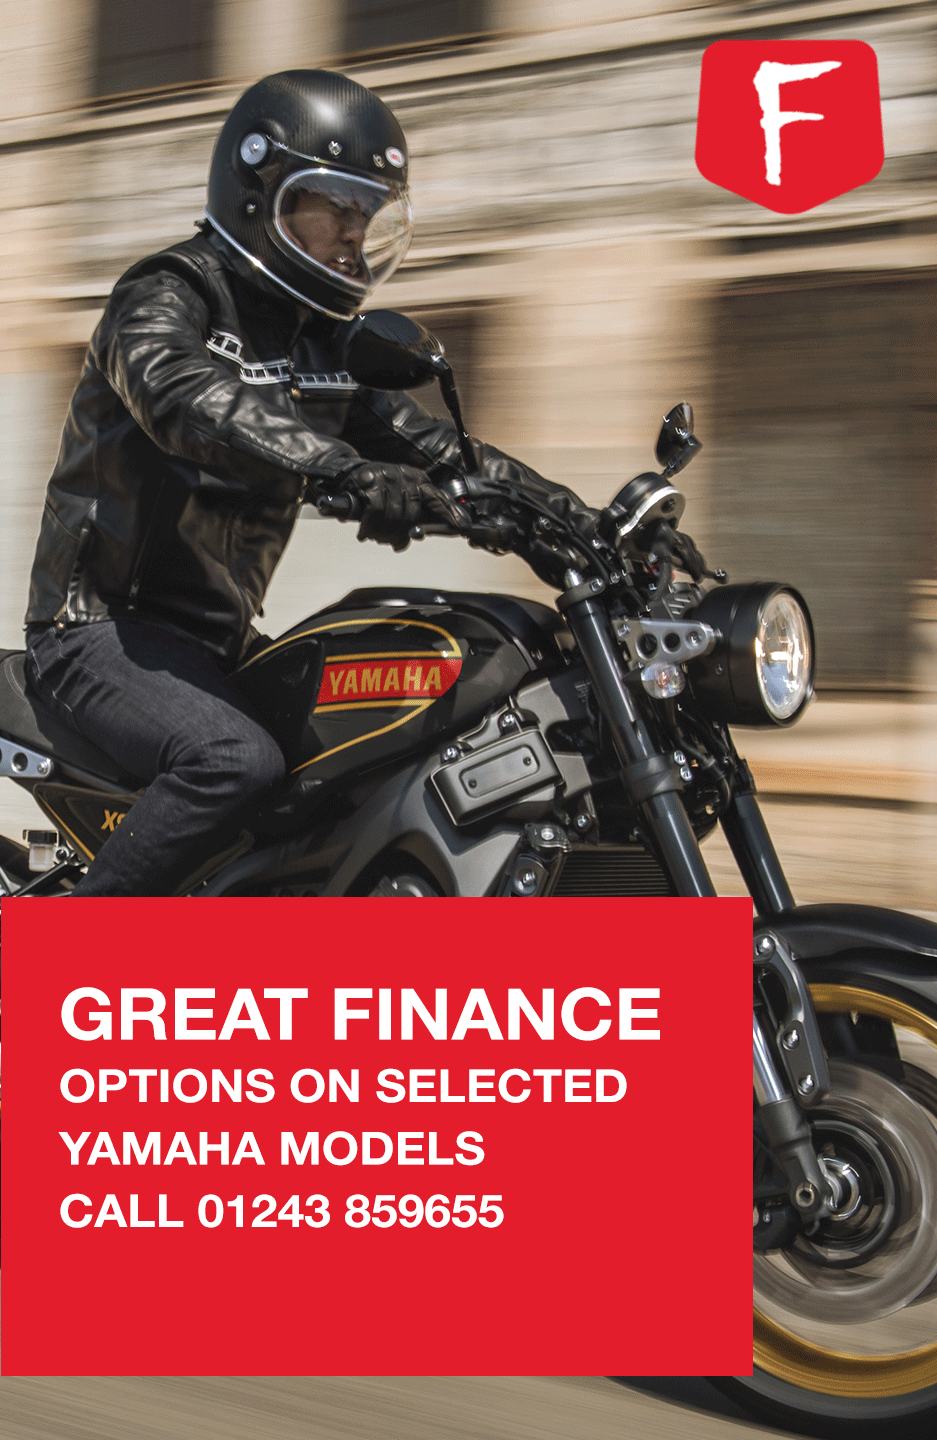 Yamaha Motorcycles Finance deals